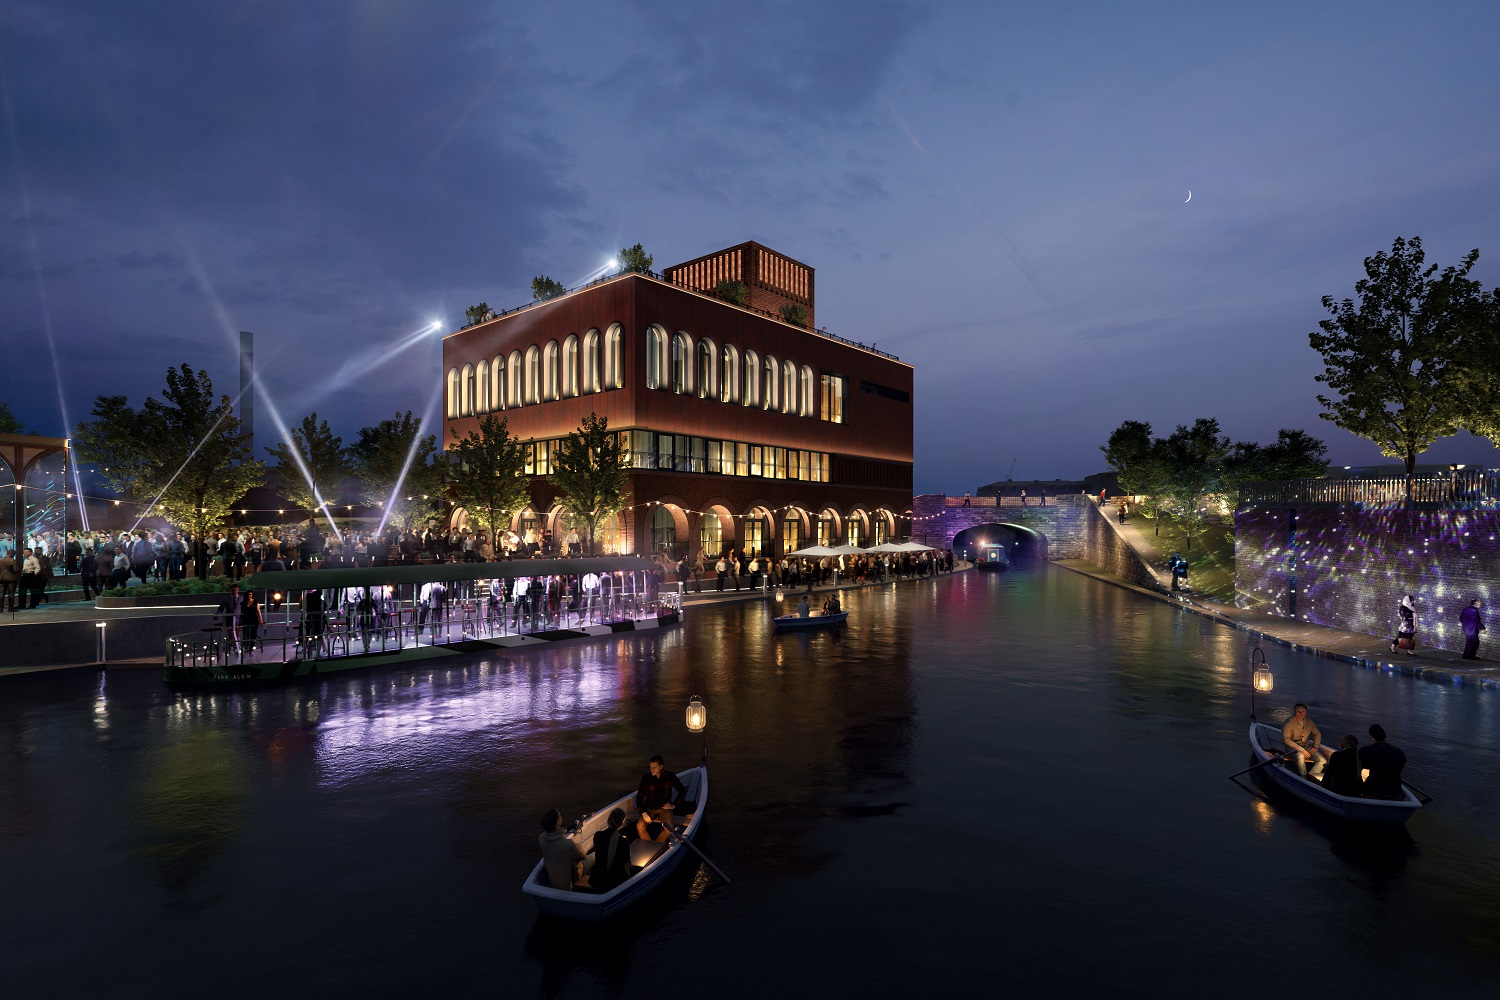 FURTHER ISLAND QUARTER PLANS REVEALED AS PART OF ON-SITE EVENT